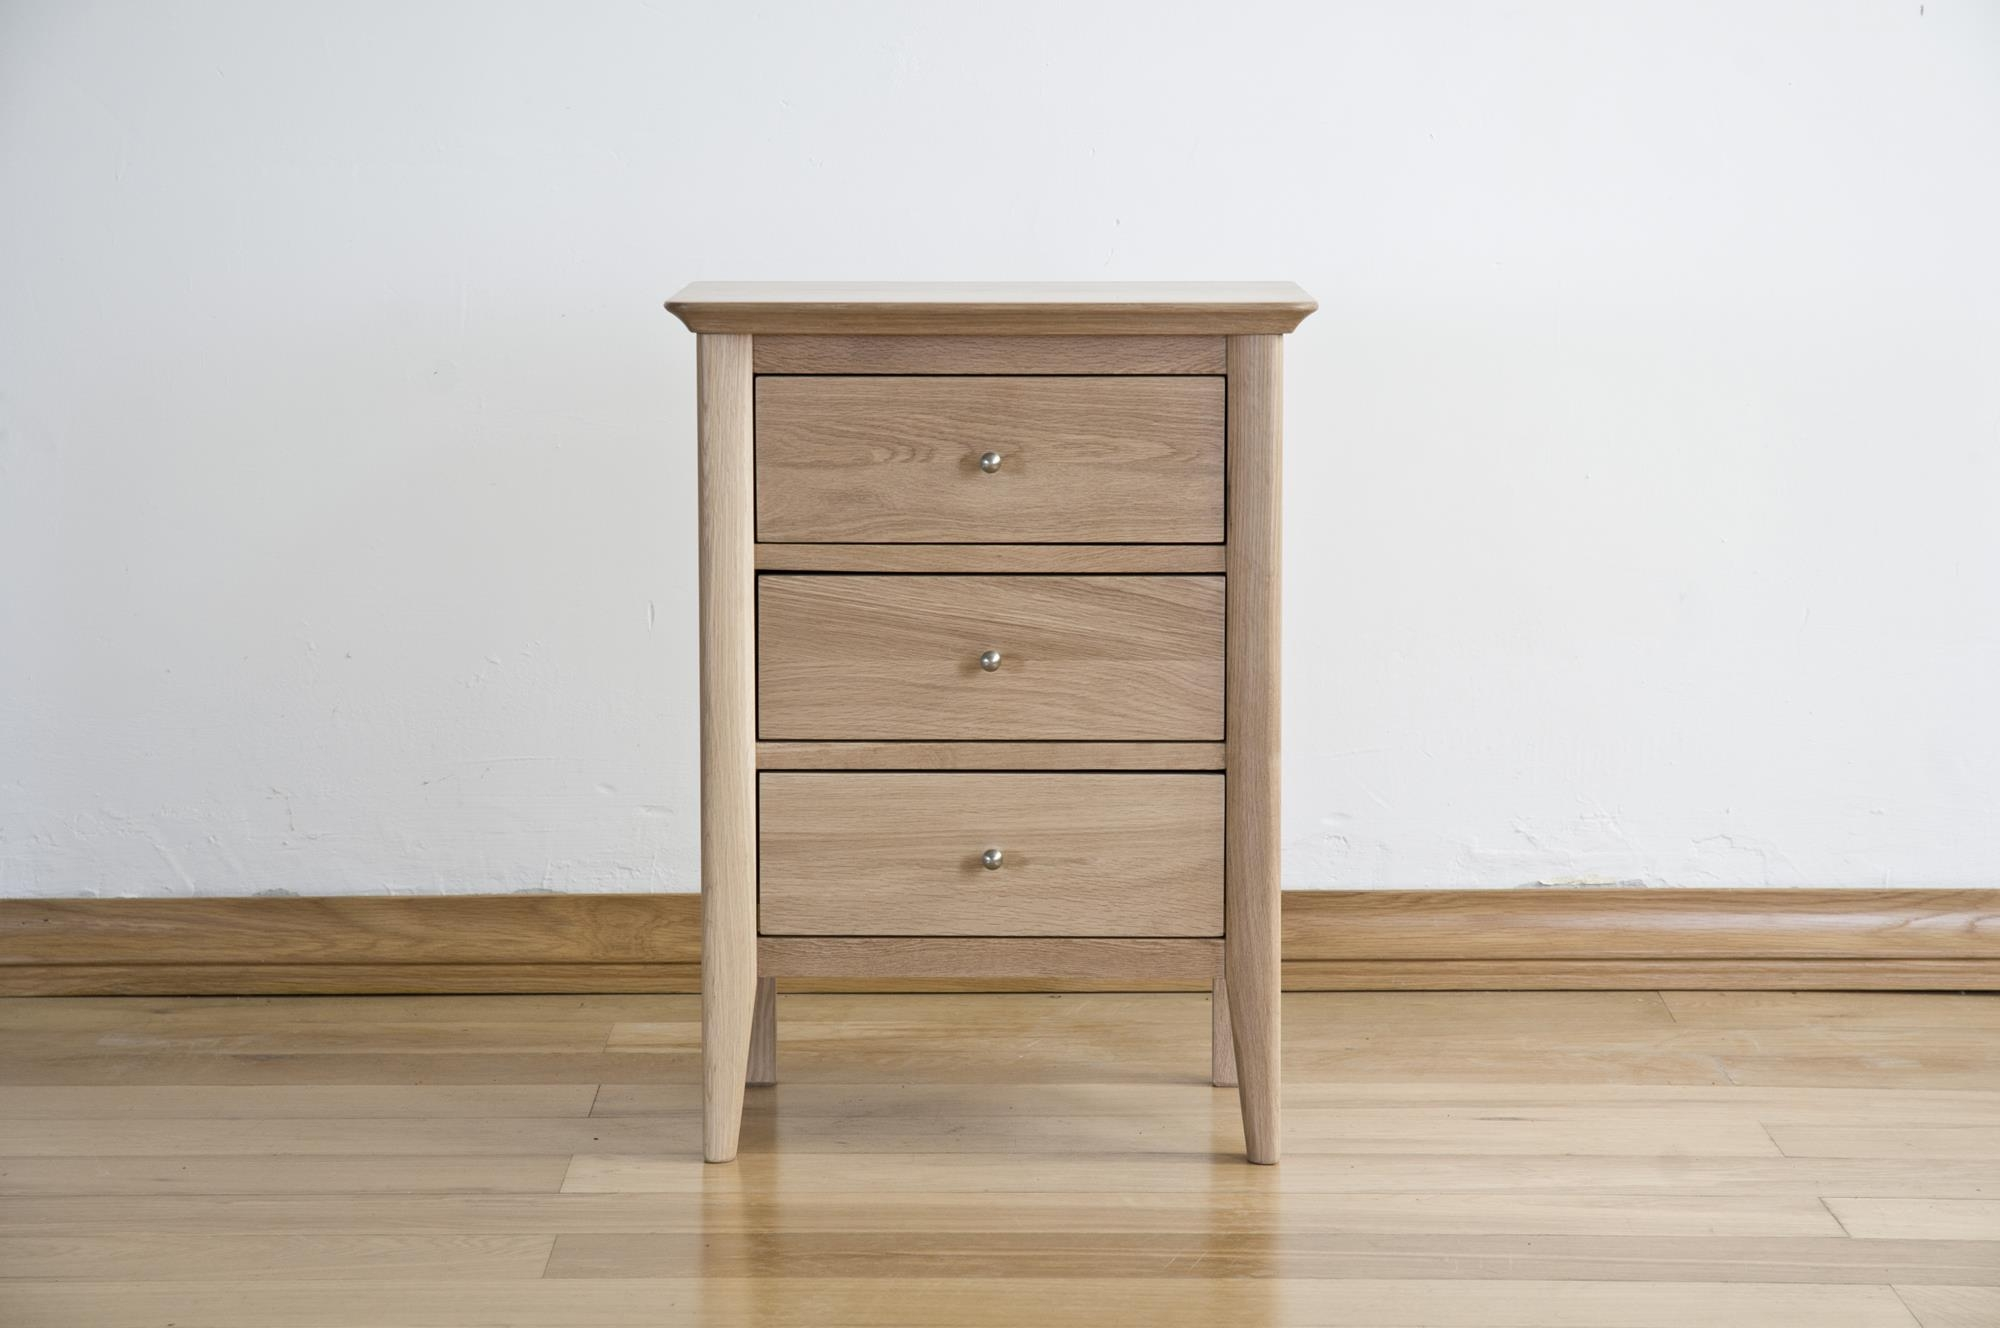 Sorrento Solid Oak 3 Drawer Bedside Cabinet